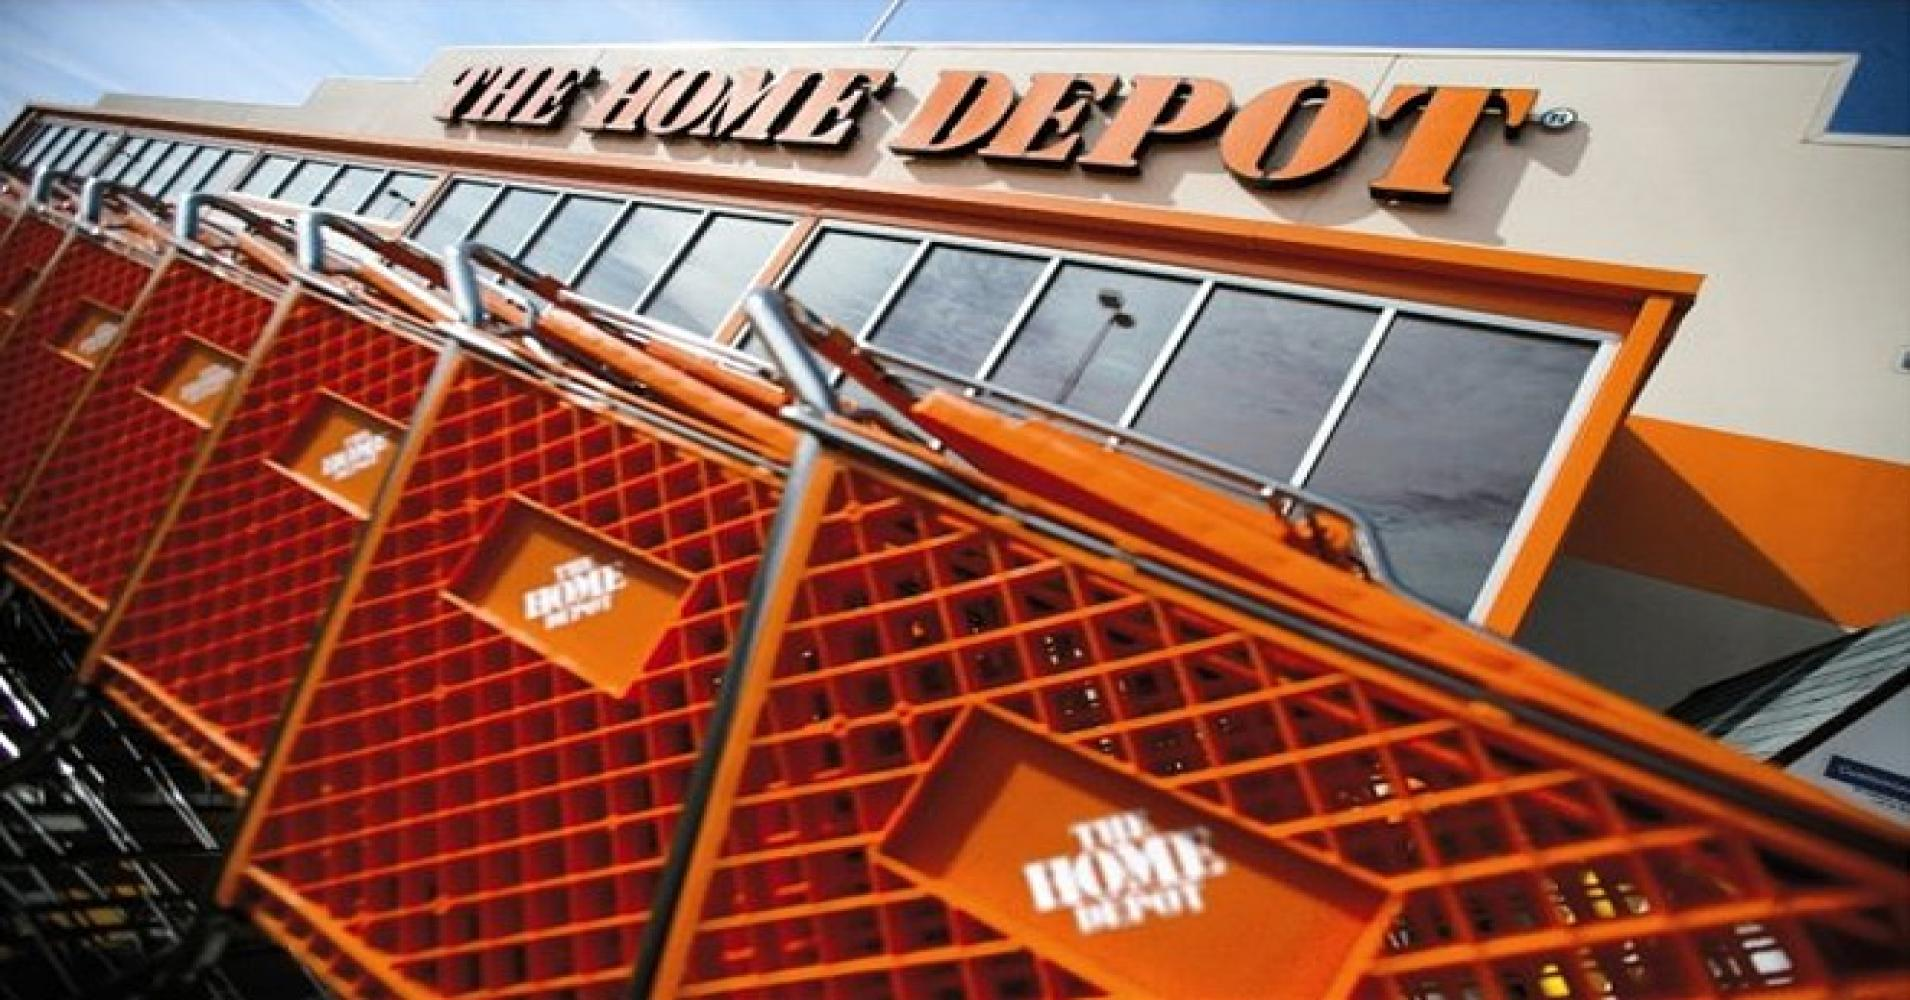 Home Depot pledges 50 million to train 20000 skilled laborers military veterans wanted